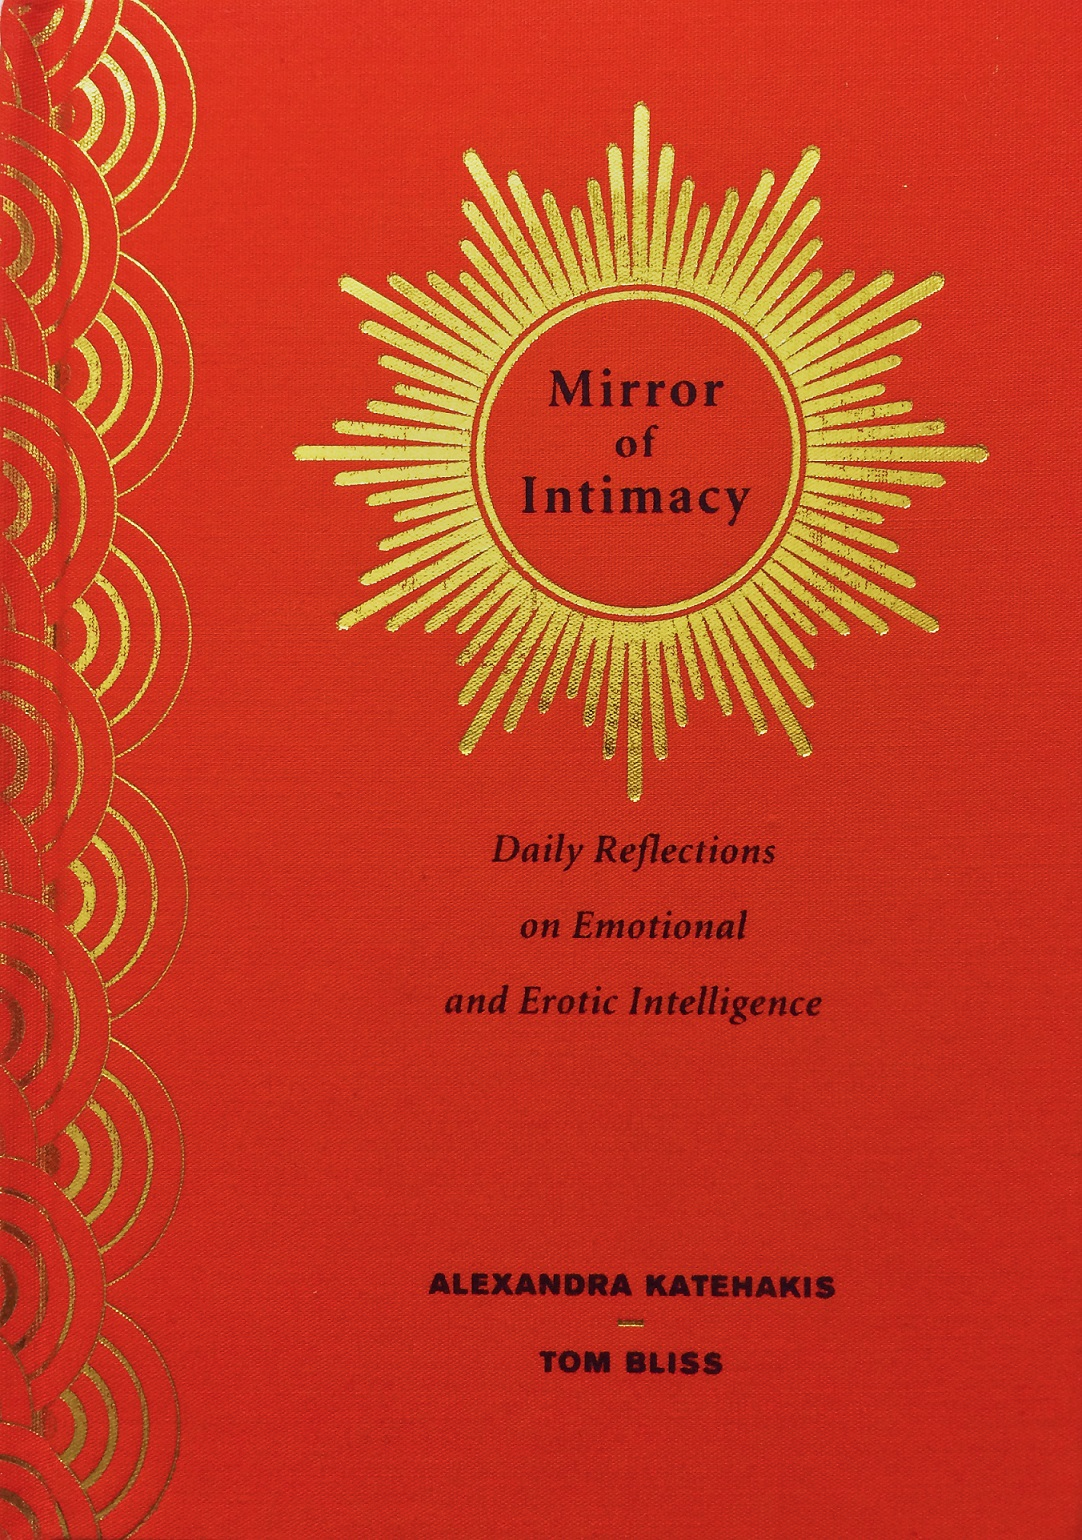 Mirror of Intimacy book by Alexandra Katehakis